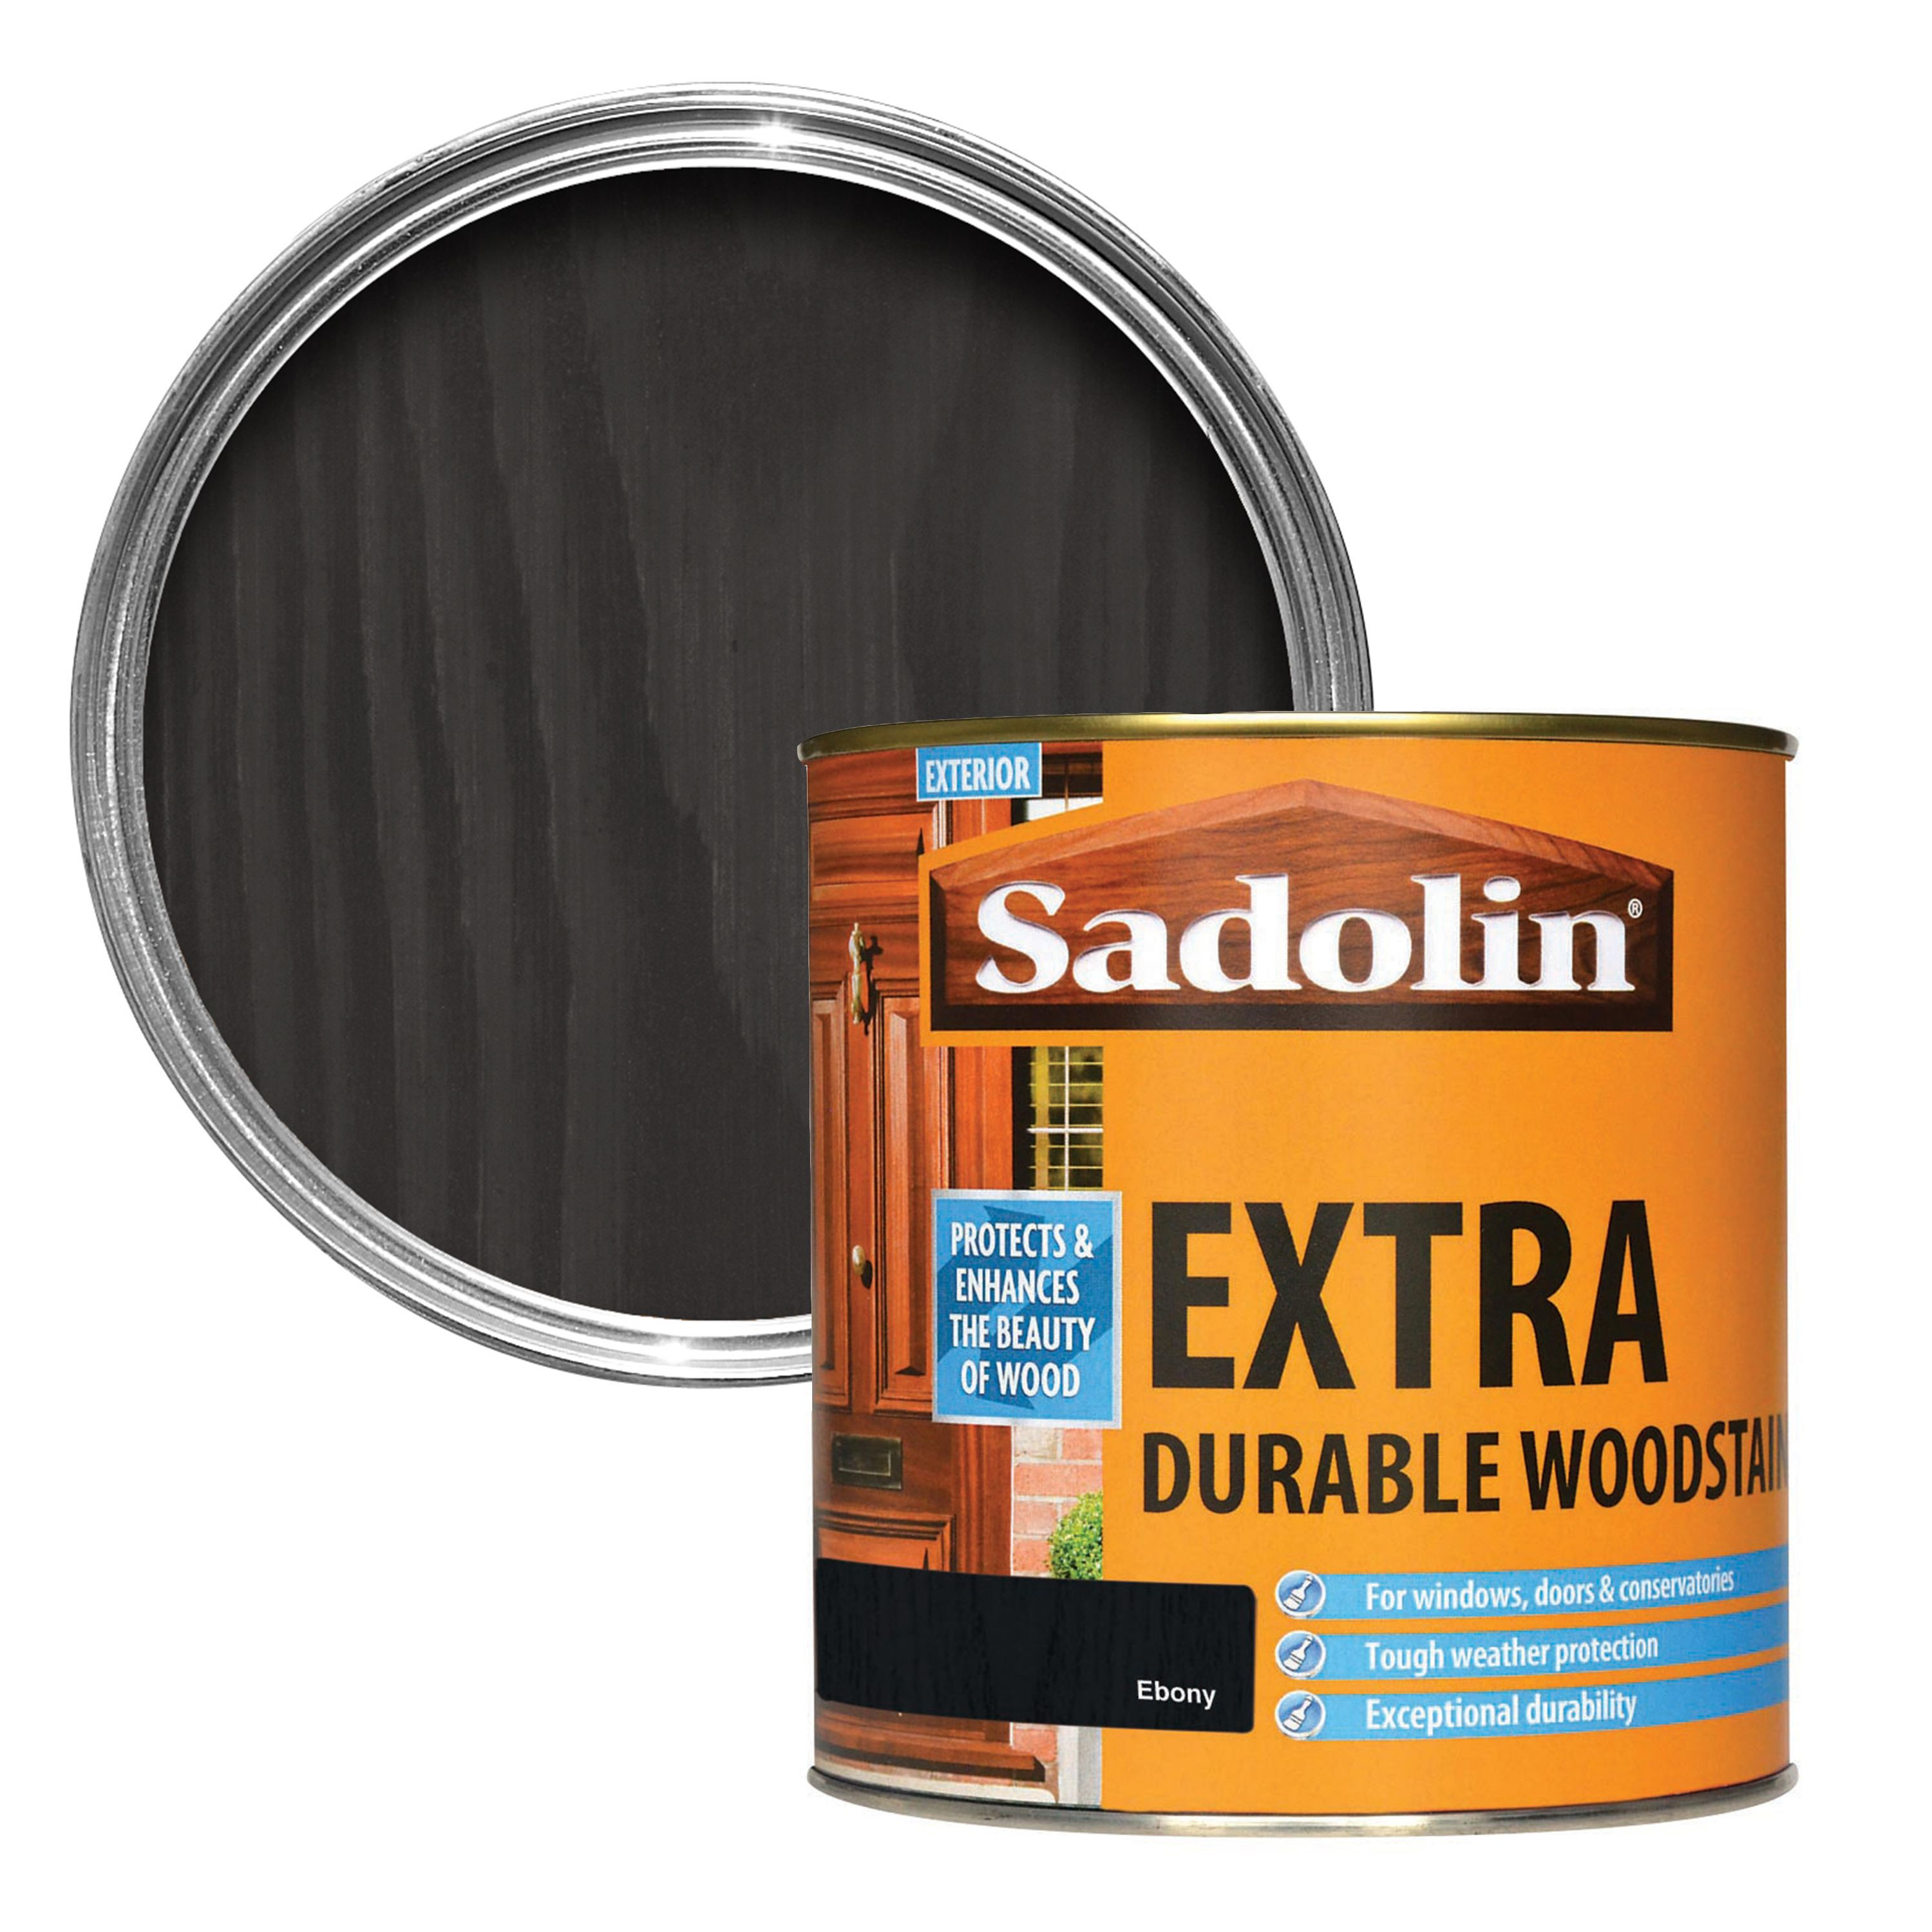 Sadolin ebony woodstain 1l departments diy at b q - Sadolin exterior wood paint image ...